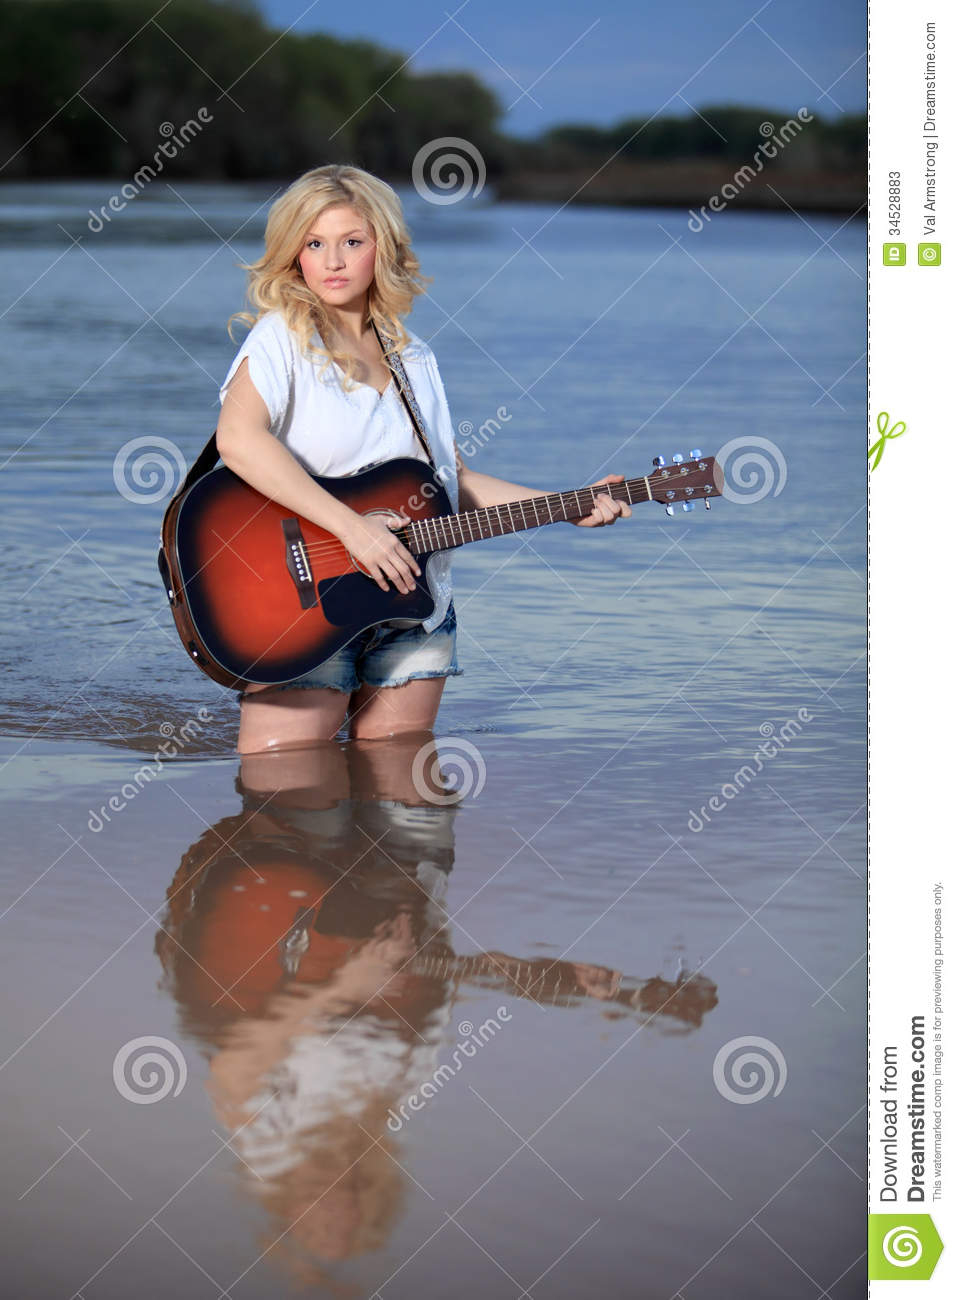 Beautiful Blond Woman Playing Acoustic Guitar In Water Stock Image